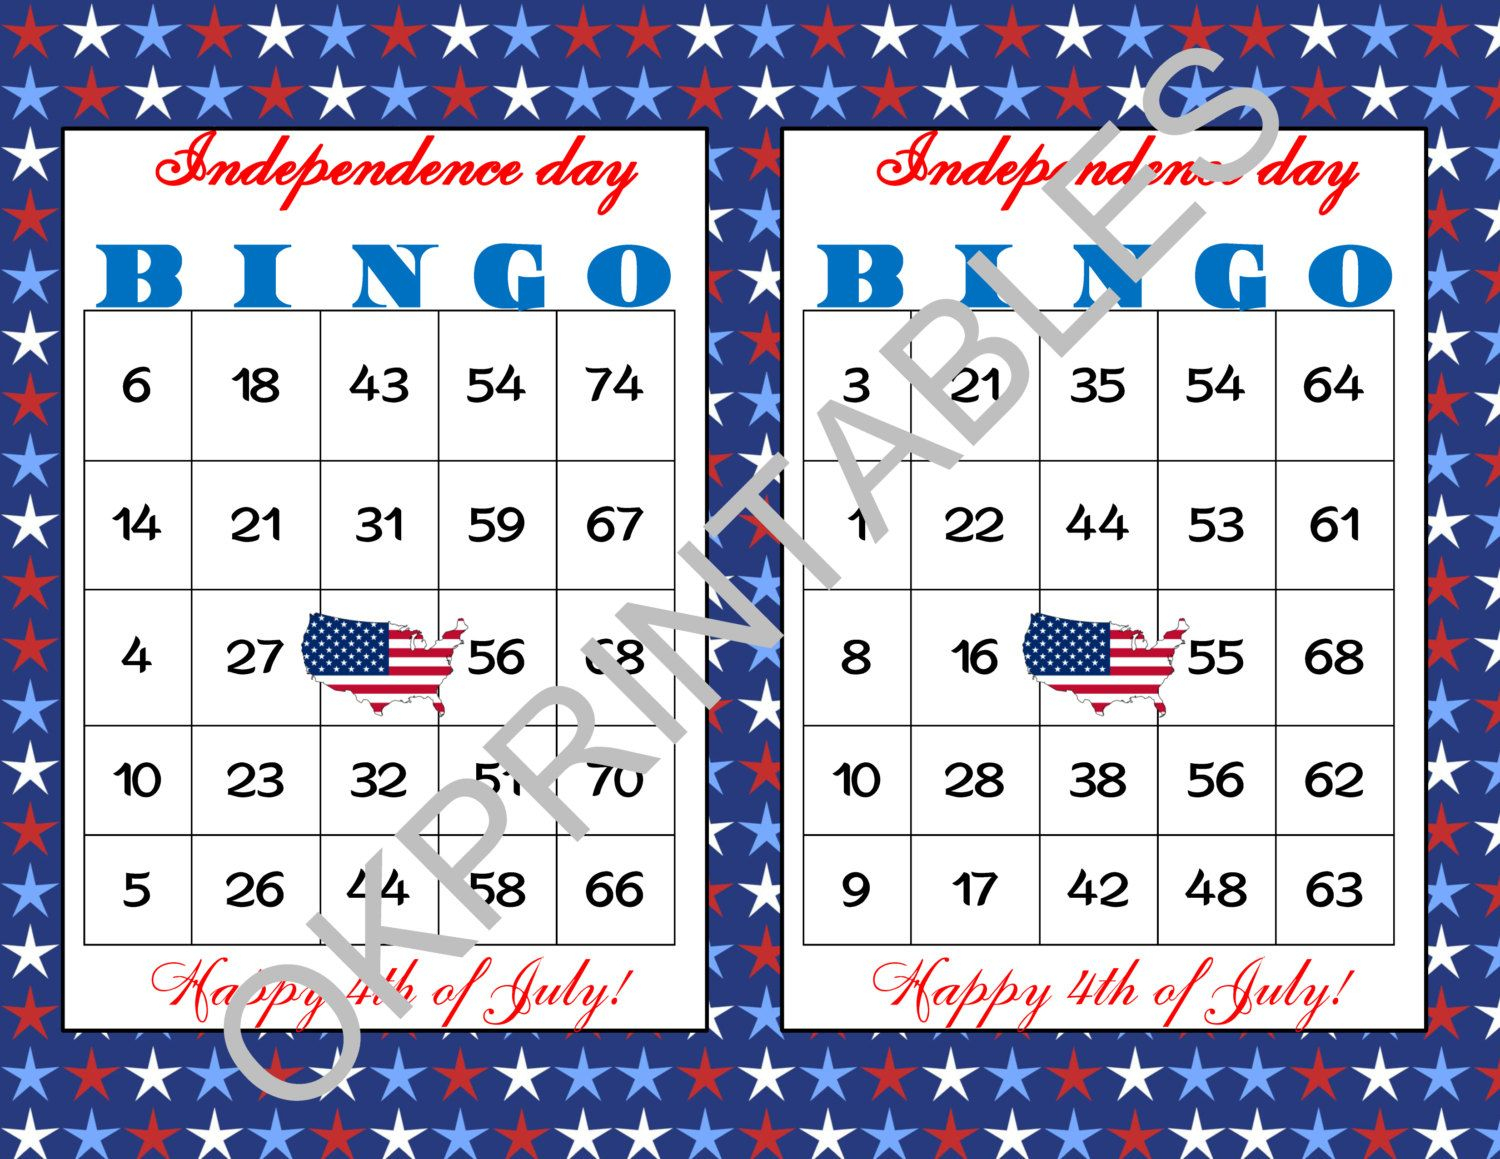 50 Happy 4Th Of July Bingo Cards - Instant Download